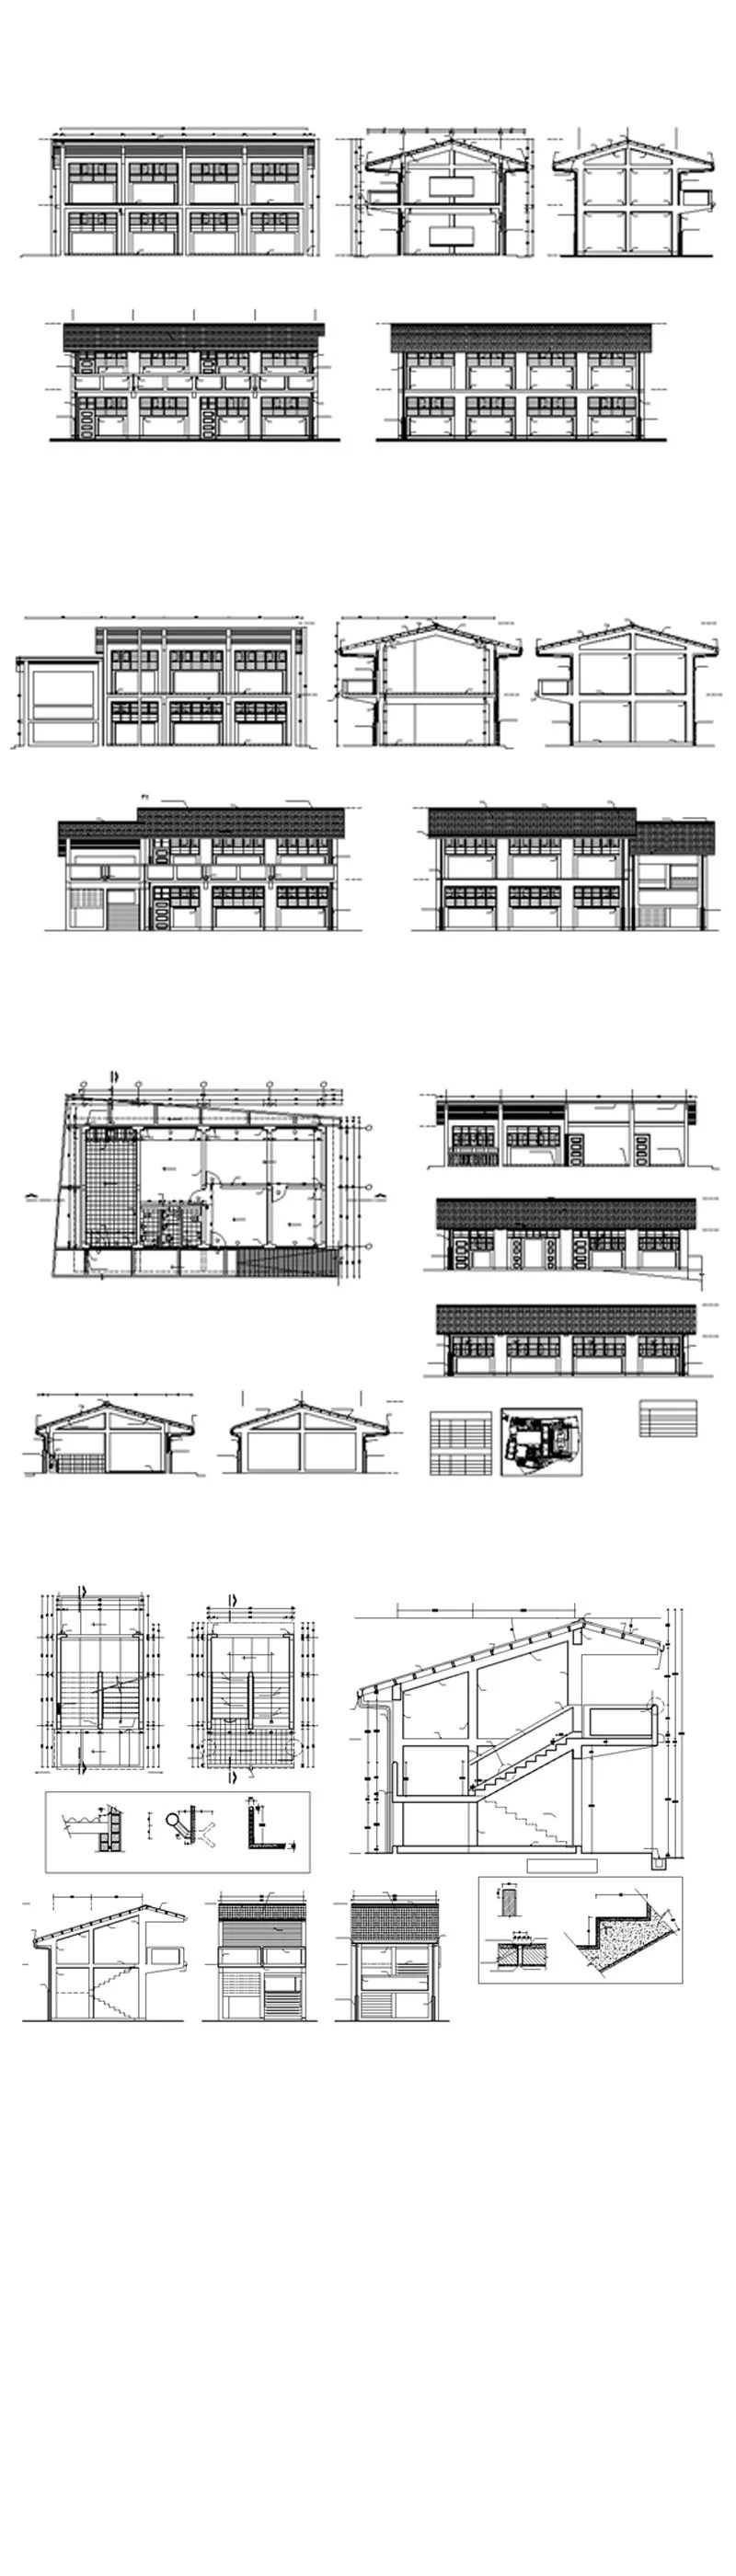 Autocad Blocks University Campus School Teaching Equipment Research Lab Laboratory Cad Design Drawings V 5 Autocad Blocks Drawings Cad